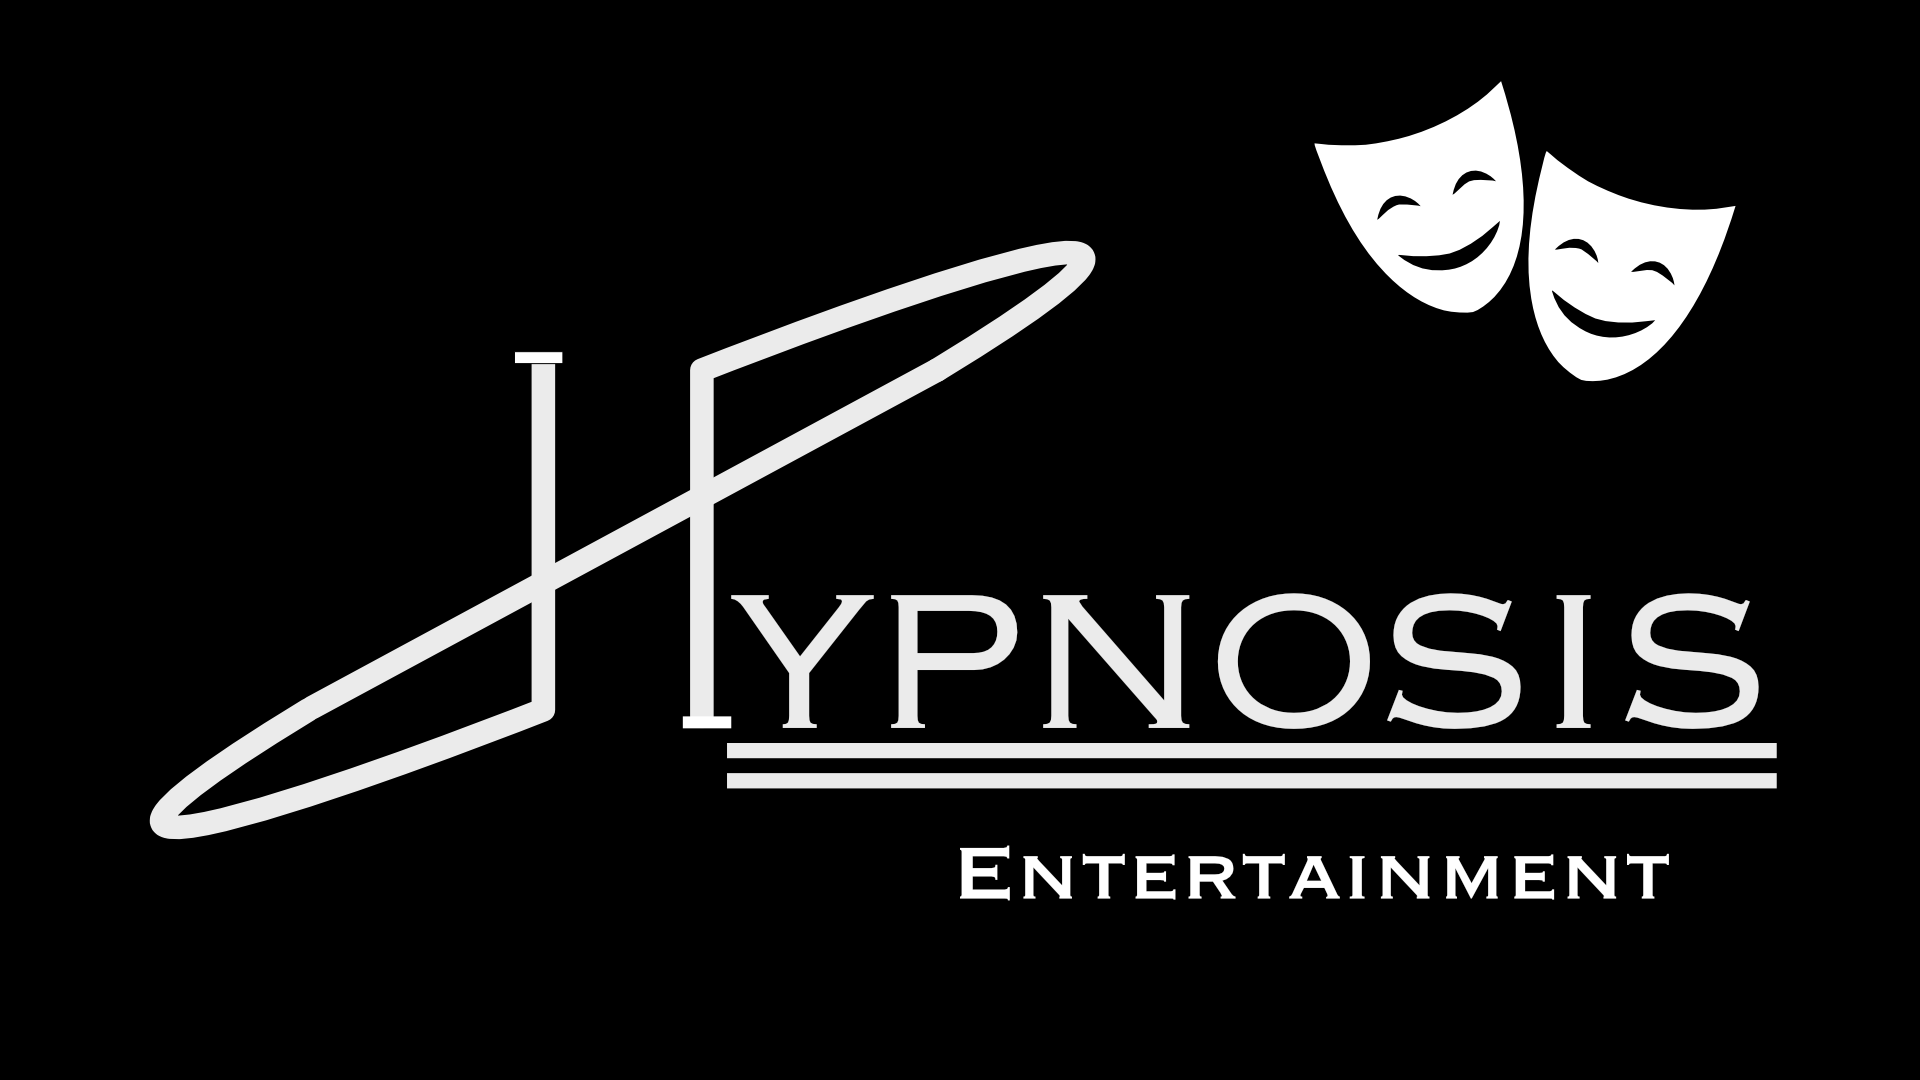 Entertainment Hypnosis